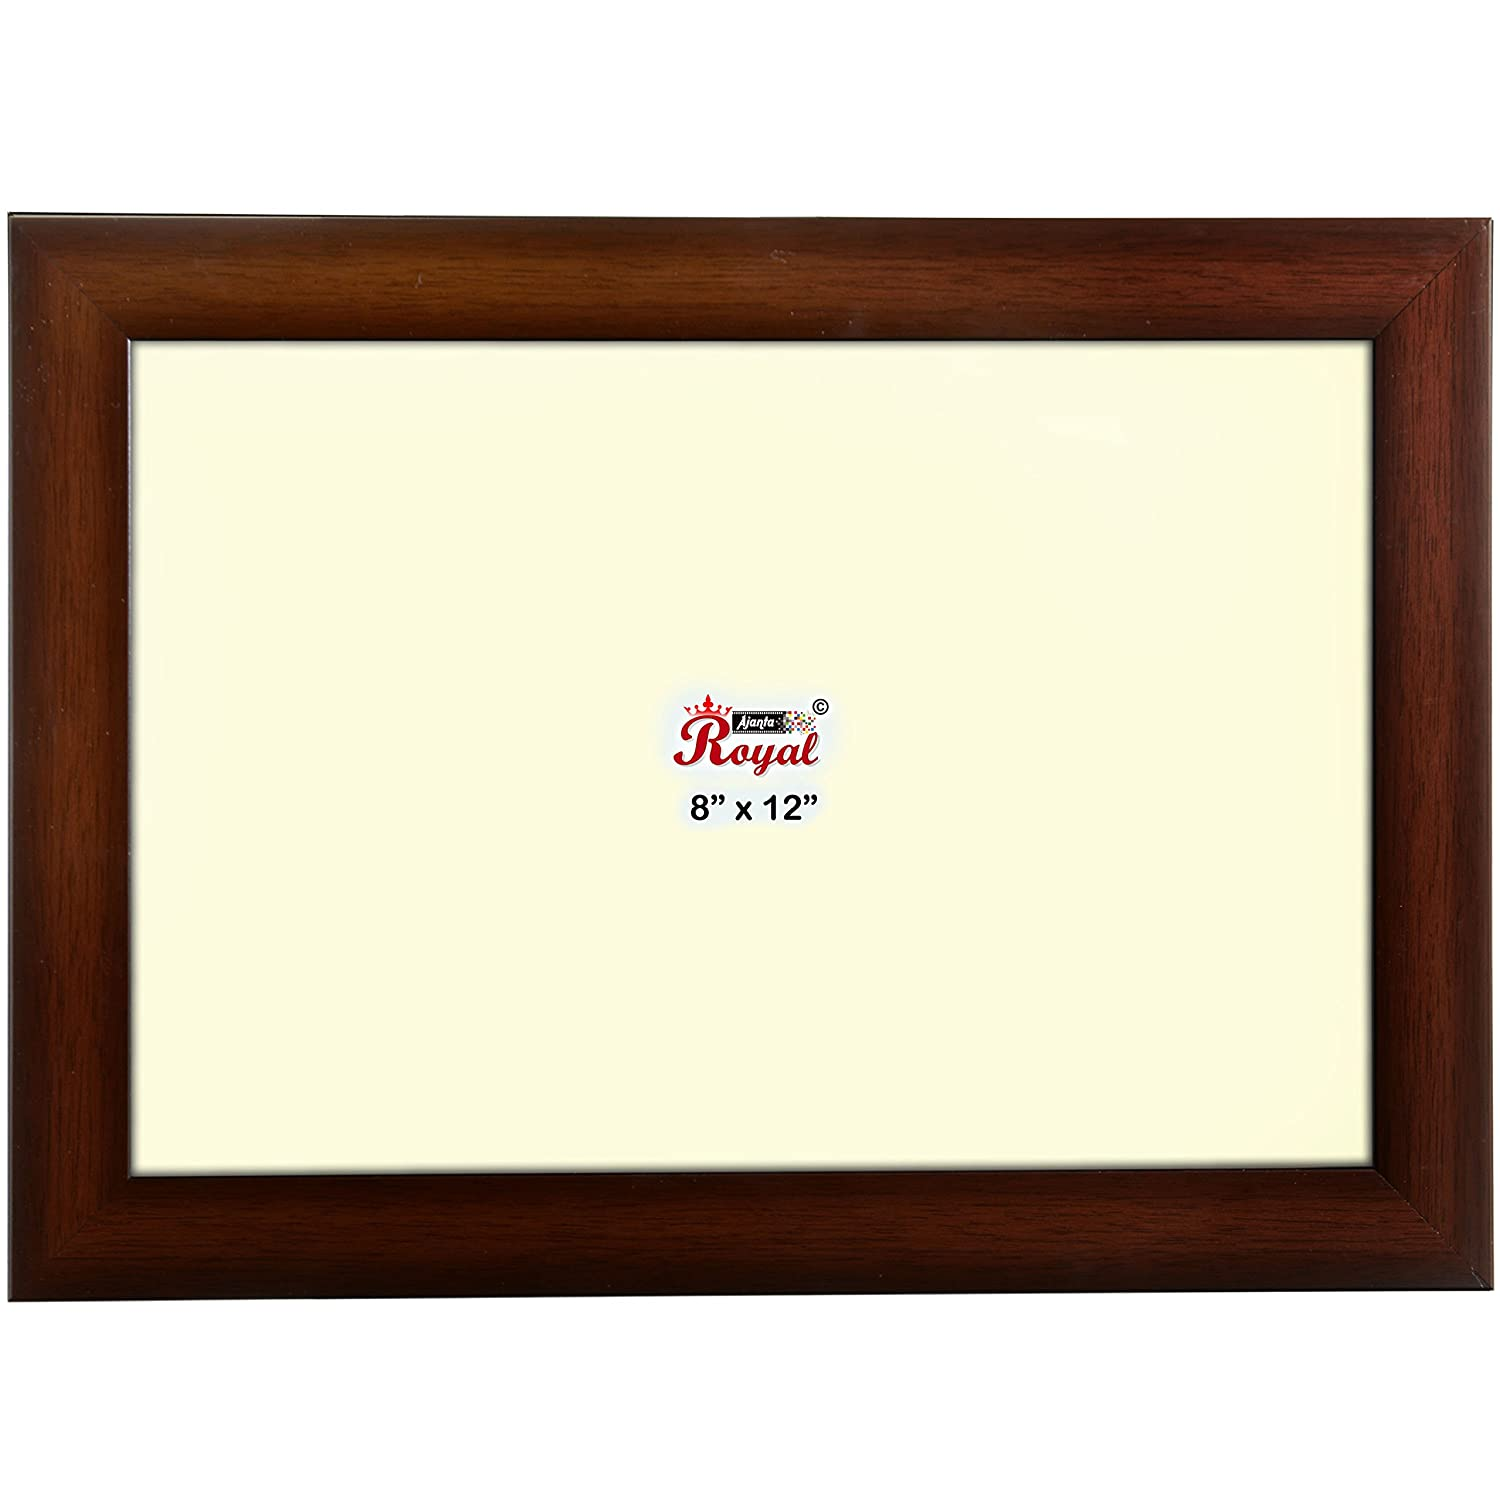 ajanta royal classic 8 x 12 photo frame insert brown sandal wood